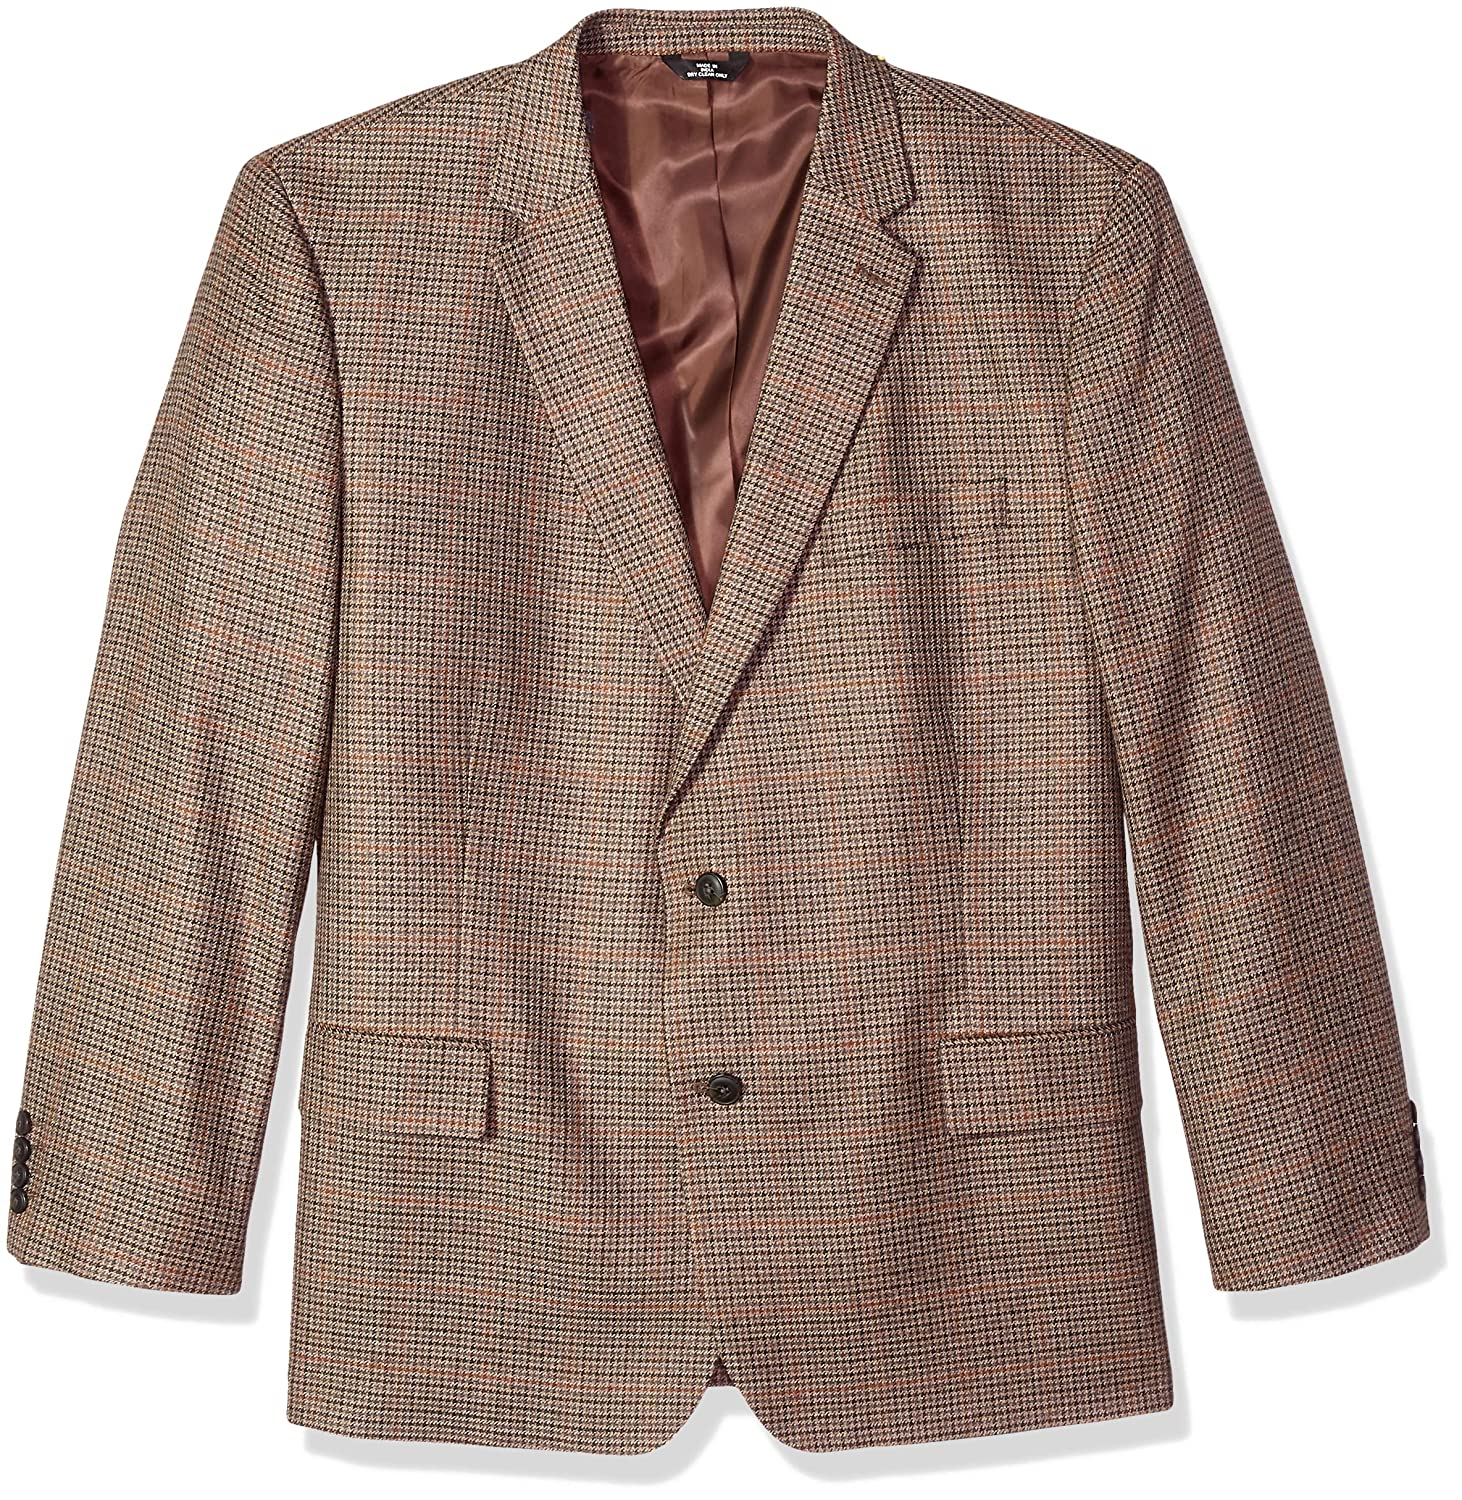 Men's Vintage Style Coats and Jackets Haggar Mens Tall B&t Houndstooth Plaid Lambswool Classic Fit Sport Coat $80.35 AT vintagedancer.com